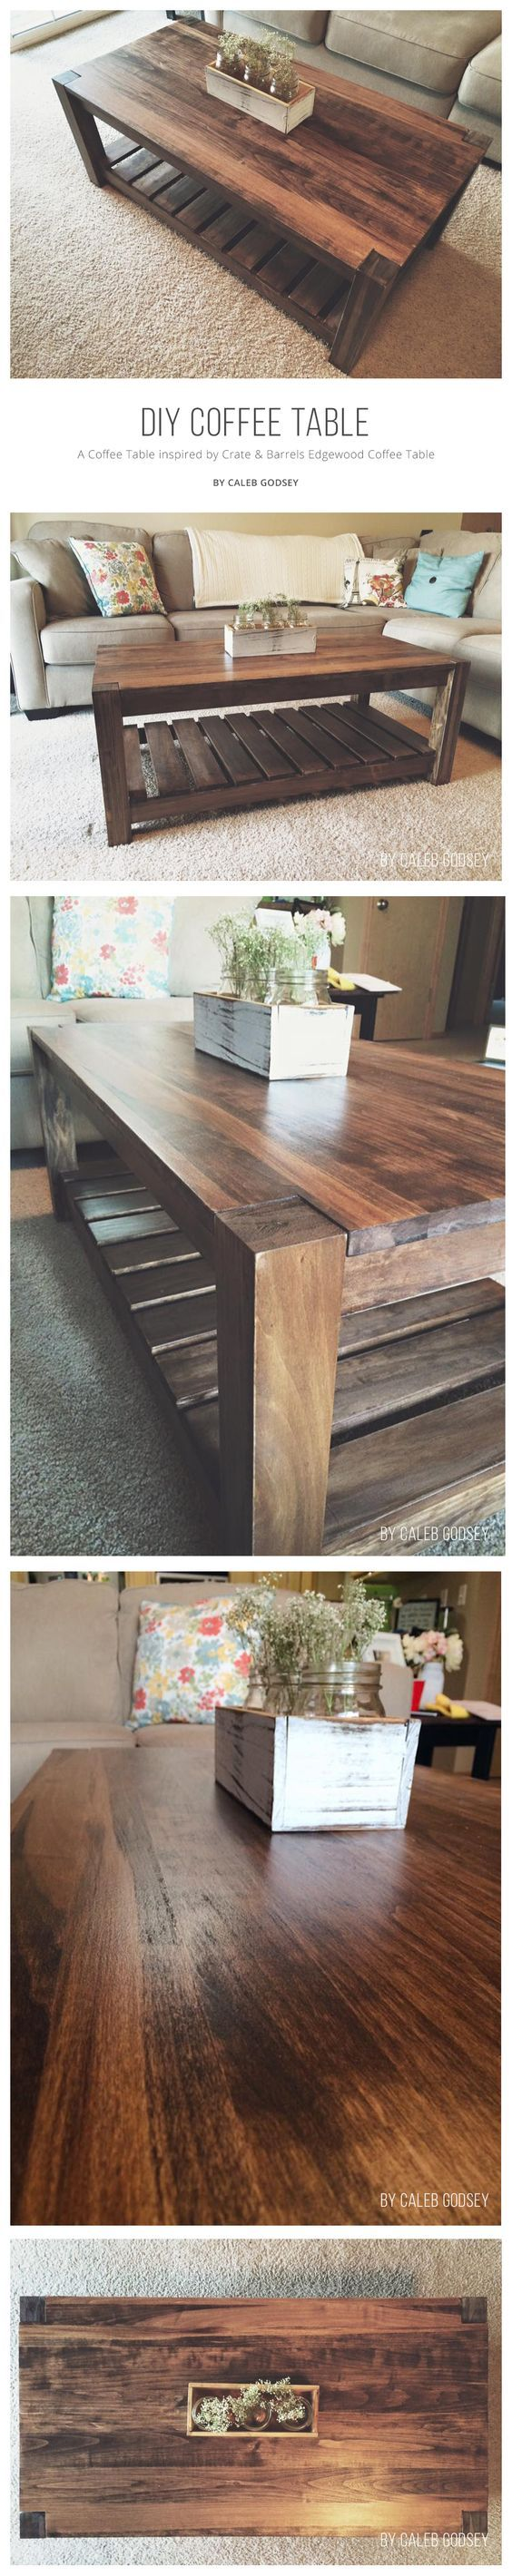 Best 25 coffee tables ideas on pinterest coffee table styling a beautiful aspen and pine diy coffee table inspired by crate geotapseo Choice Image